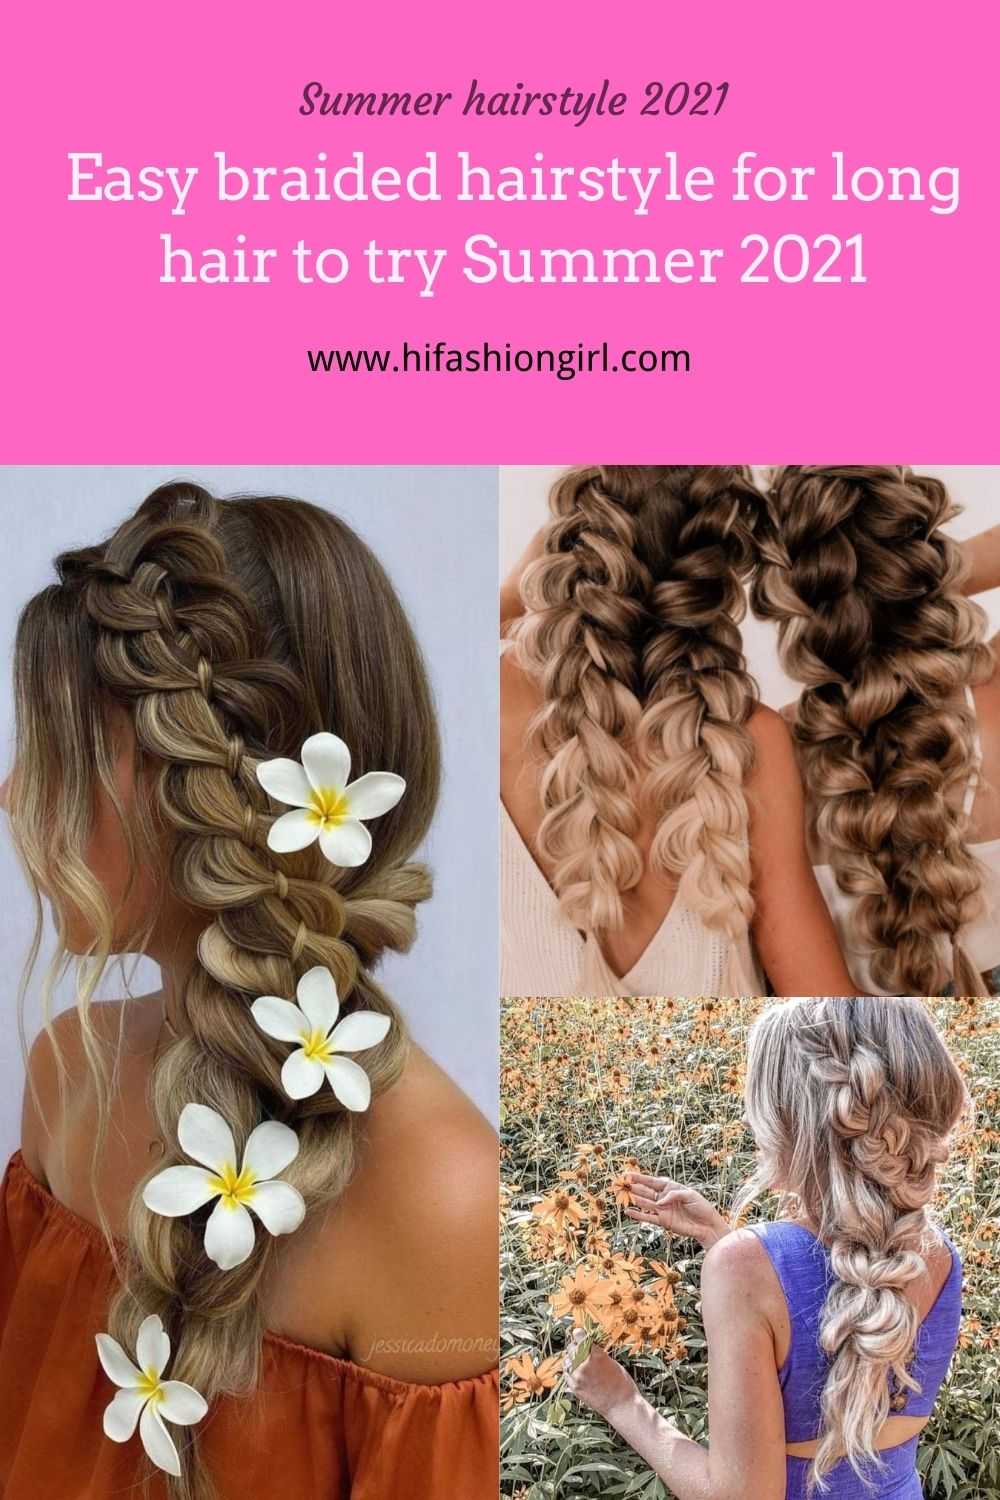 Easy summer braided hairstyle for long hair 2021